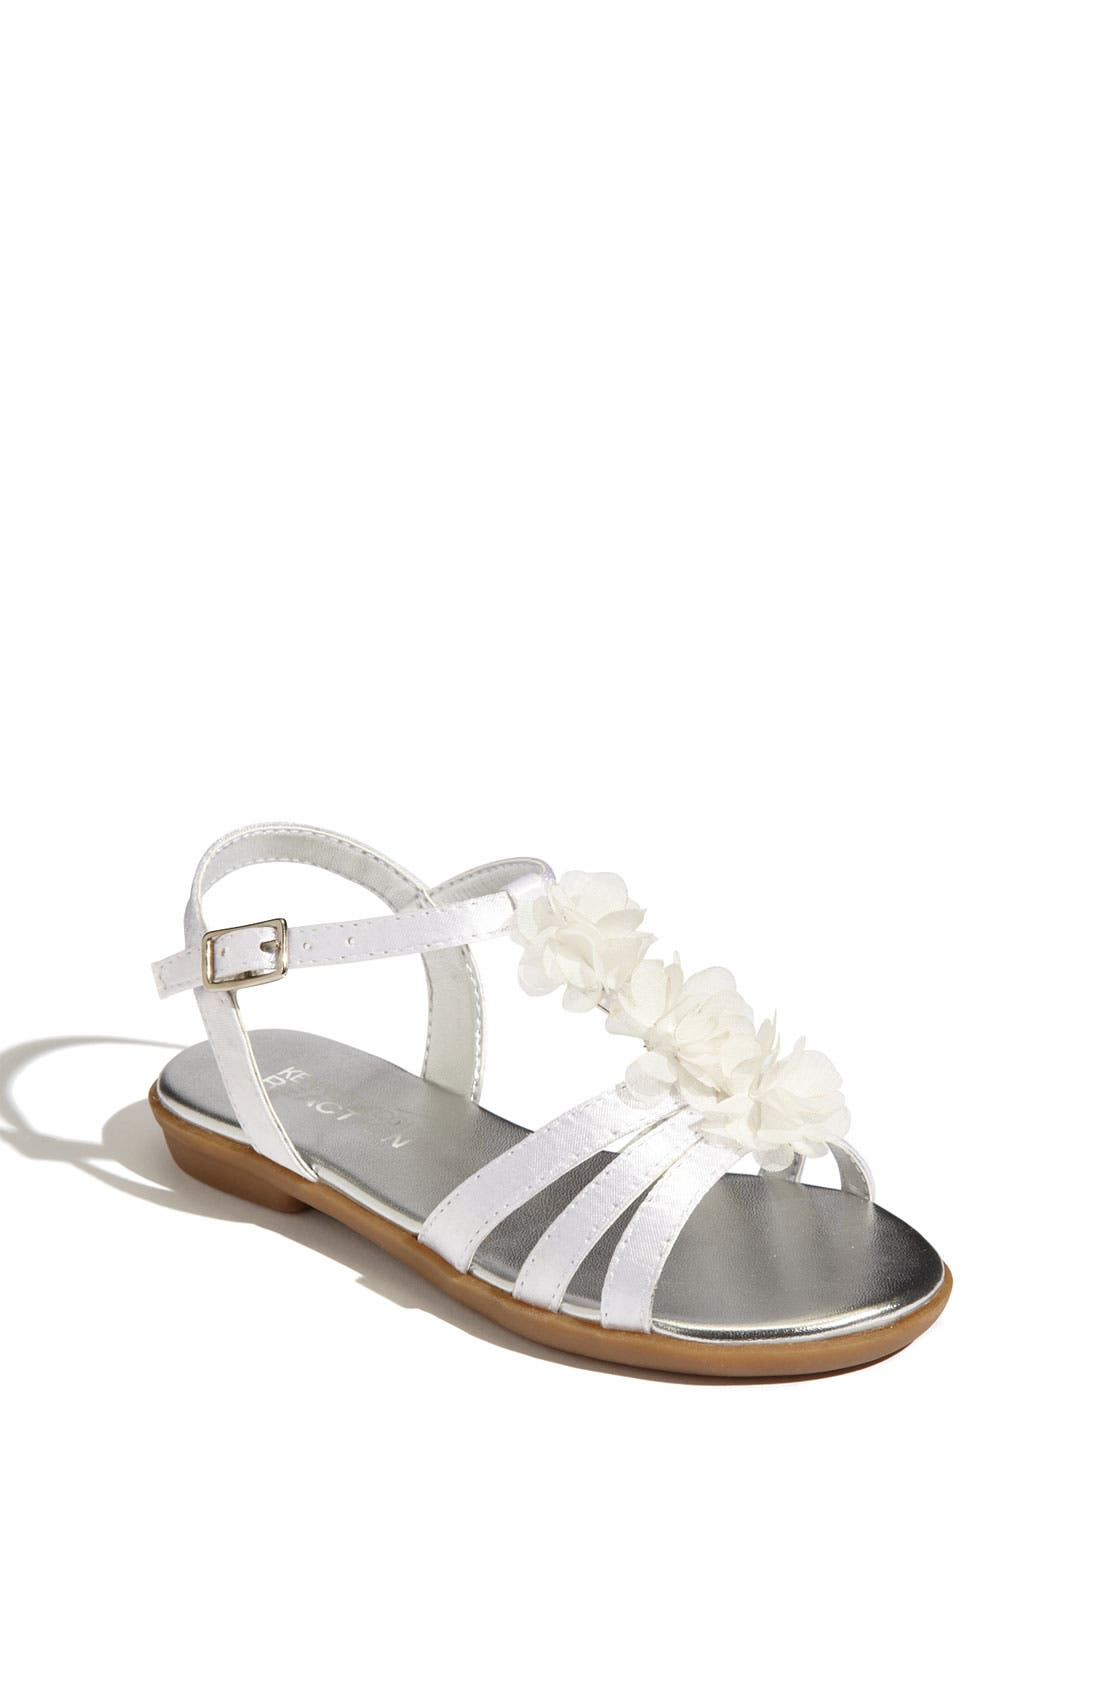 Alternate Image 1 Selected - Kenneth Cole Reaction 'Face to Chase 2' Sandal (Walker & Toddler)